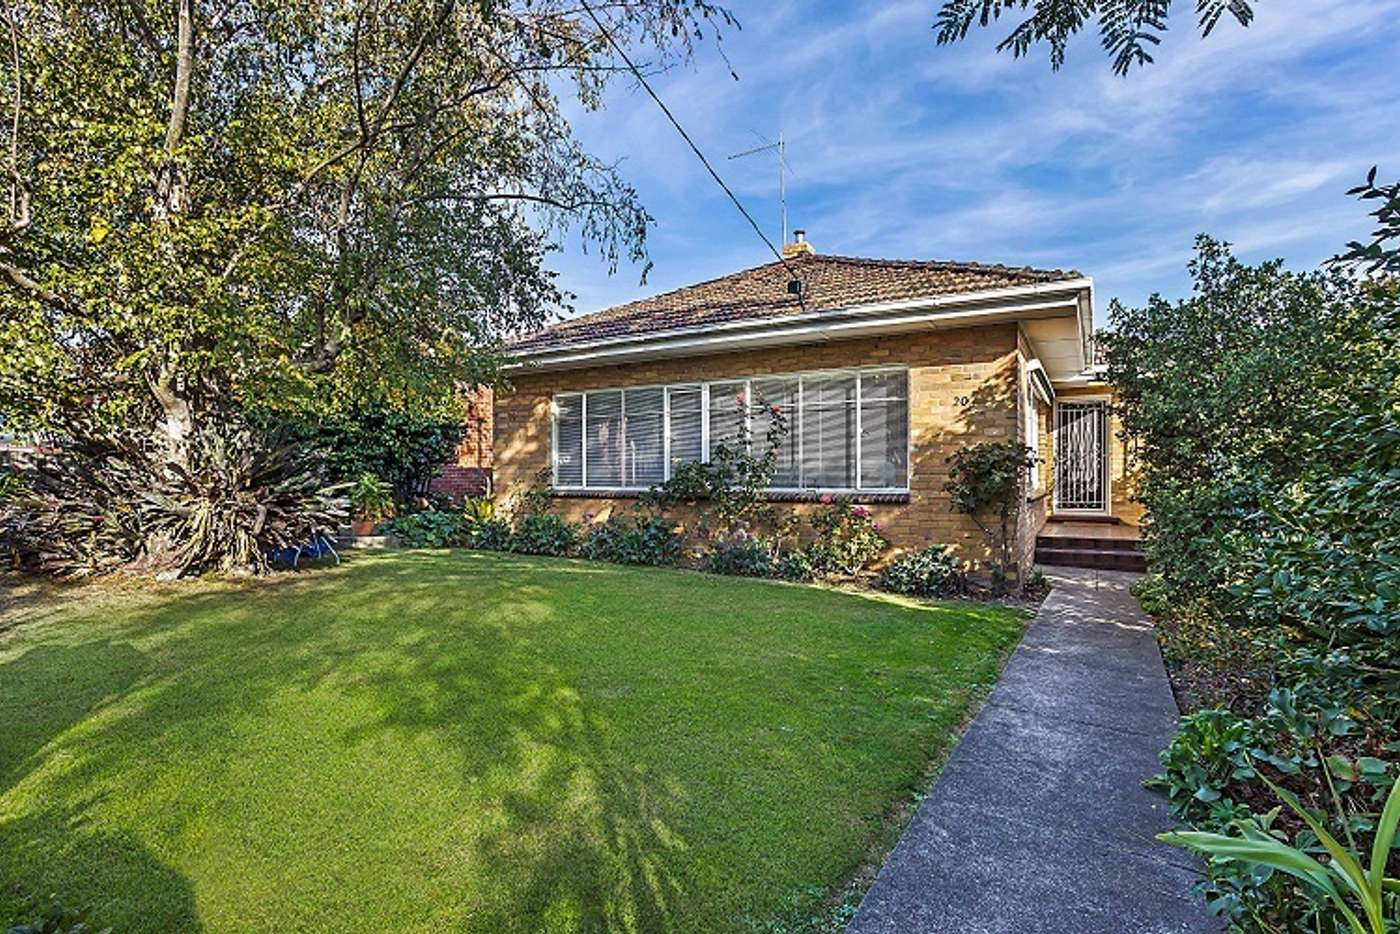 Main view of Homely house listing, 20 Porter Road, Balwyn VIC 3103